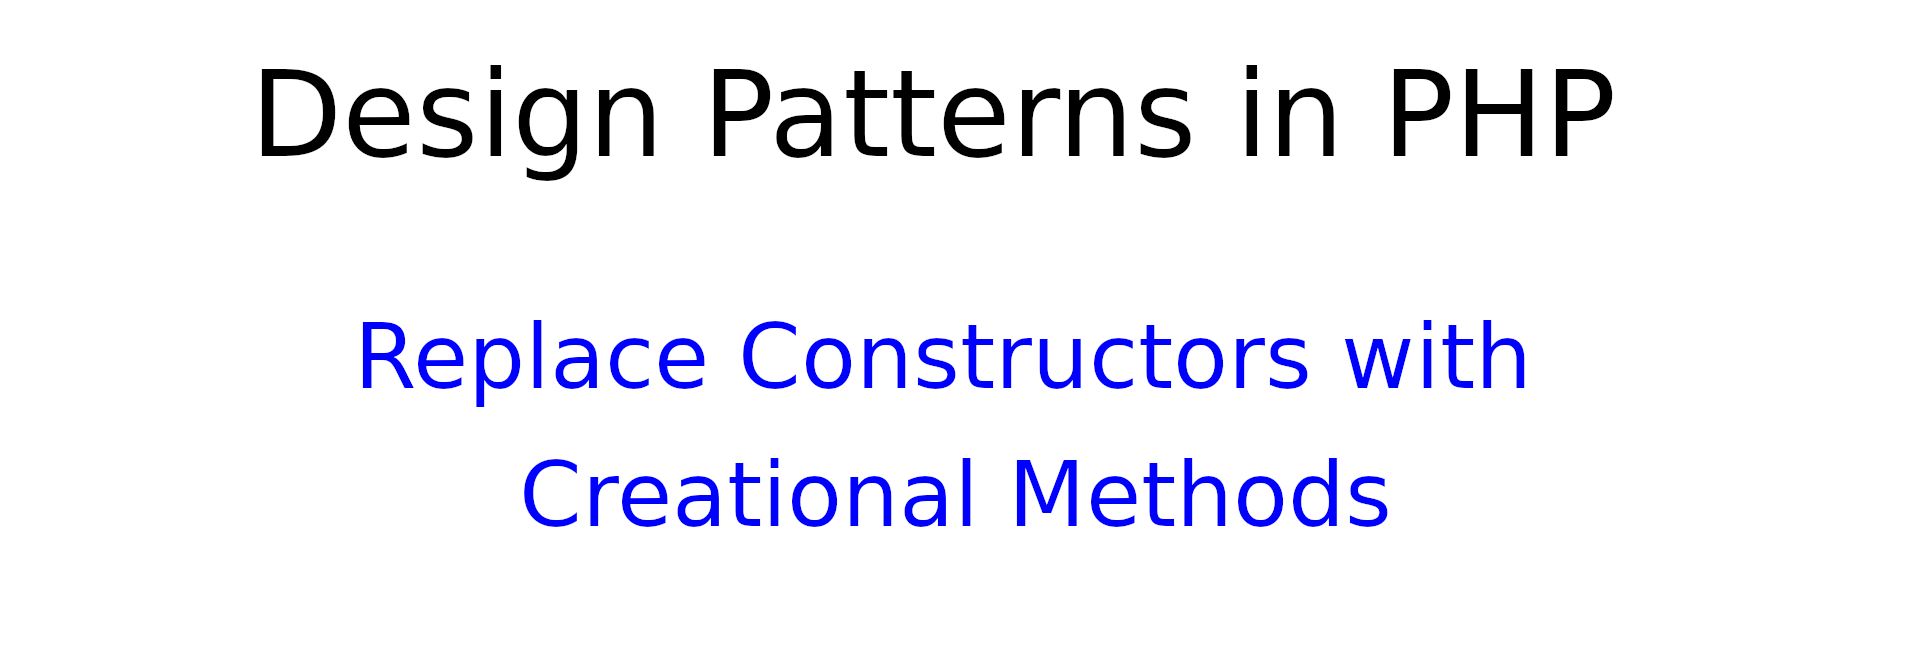 Design patterns in PHP: Replace Constructors with Creation Methods